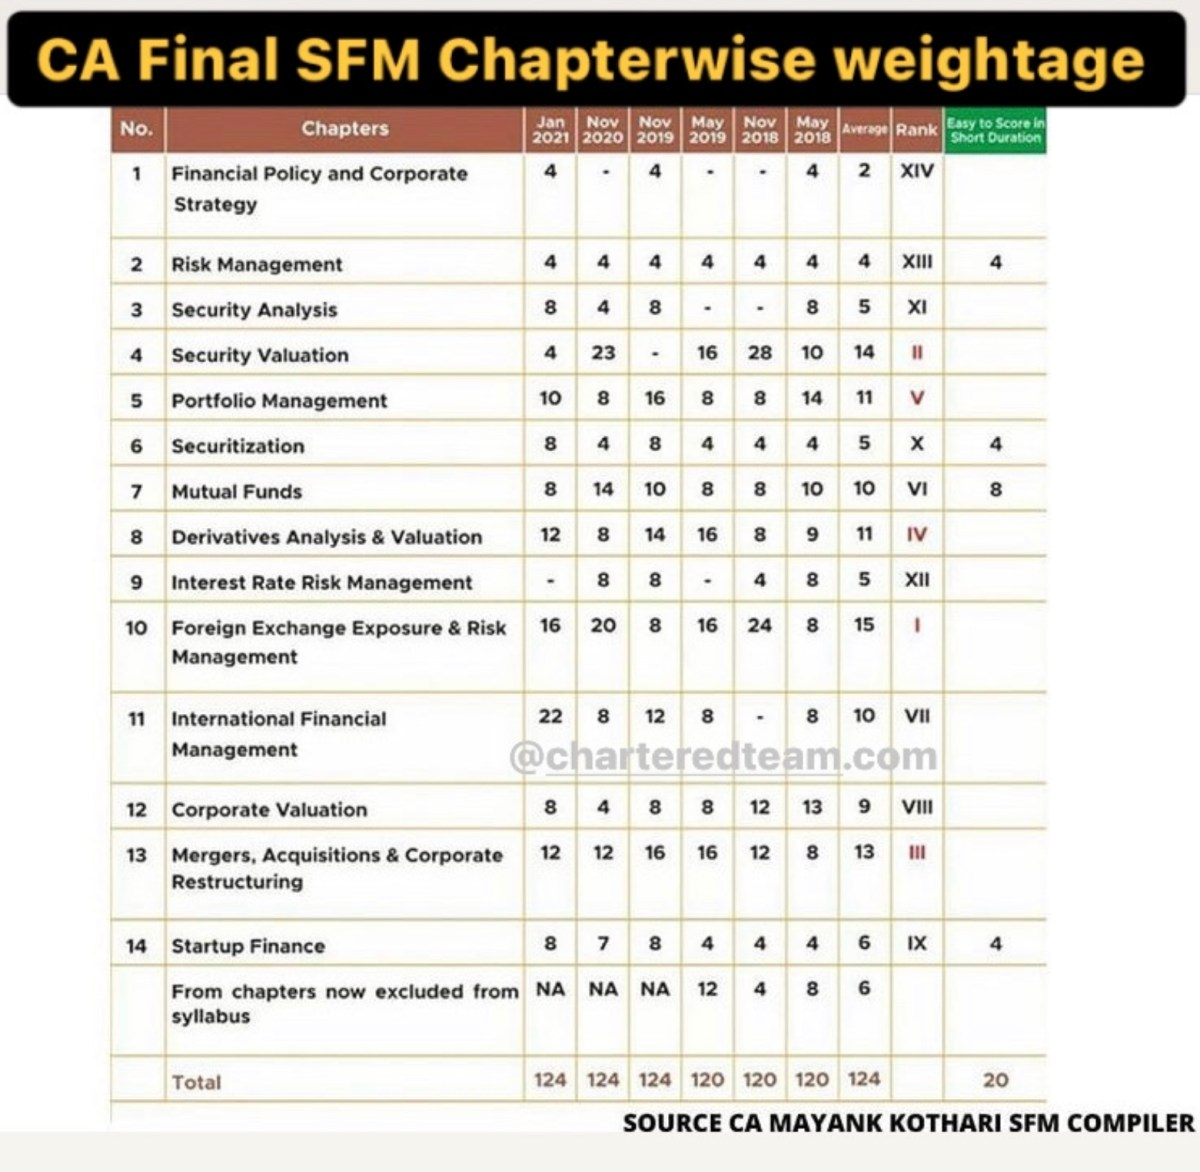 SFM Chapter-wise weightage